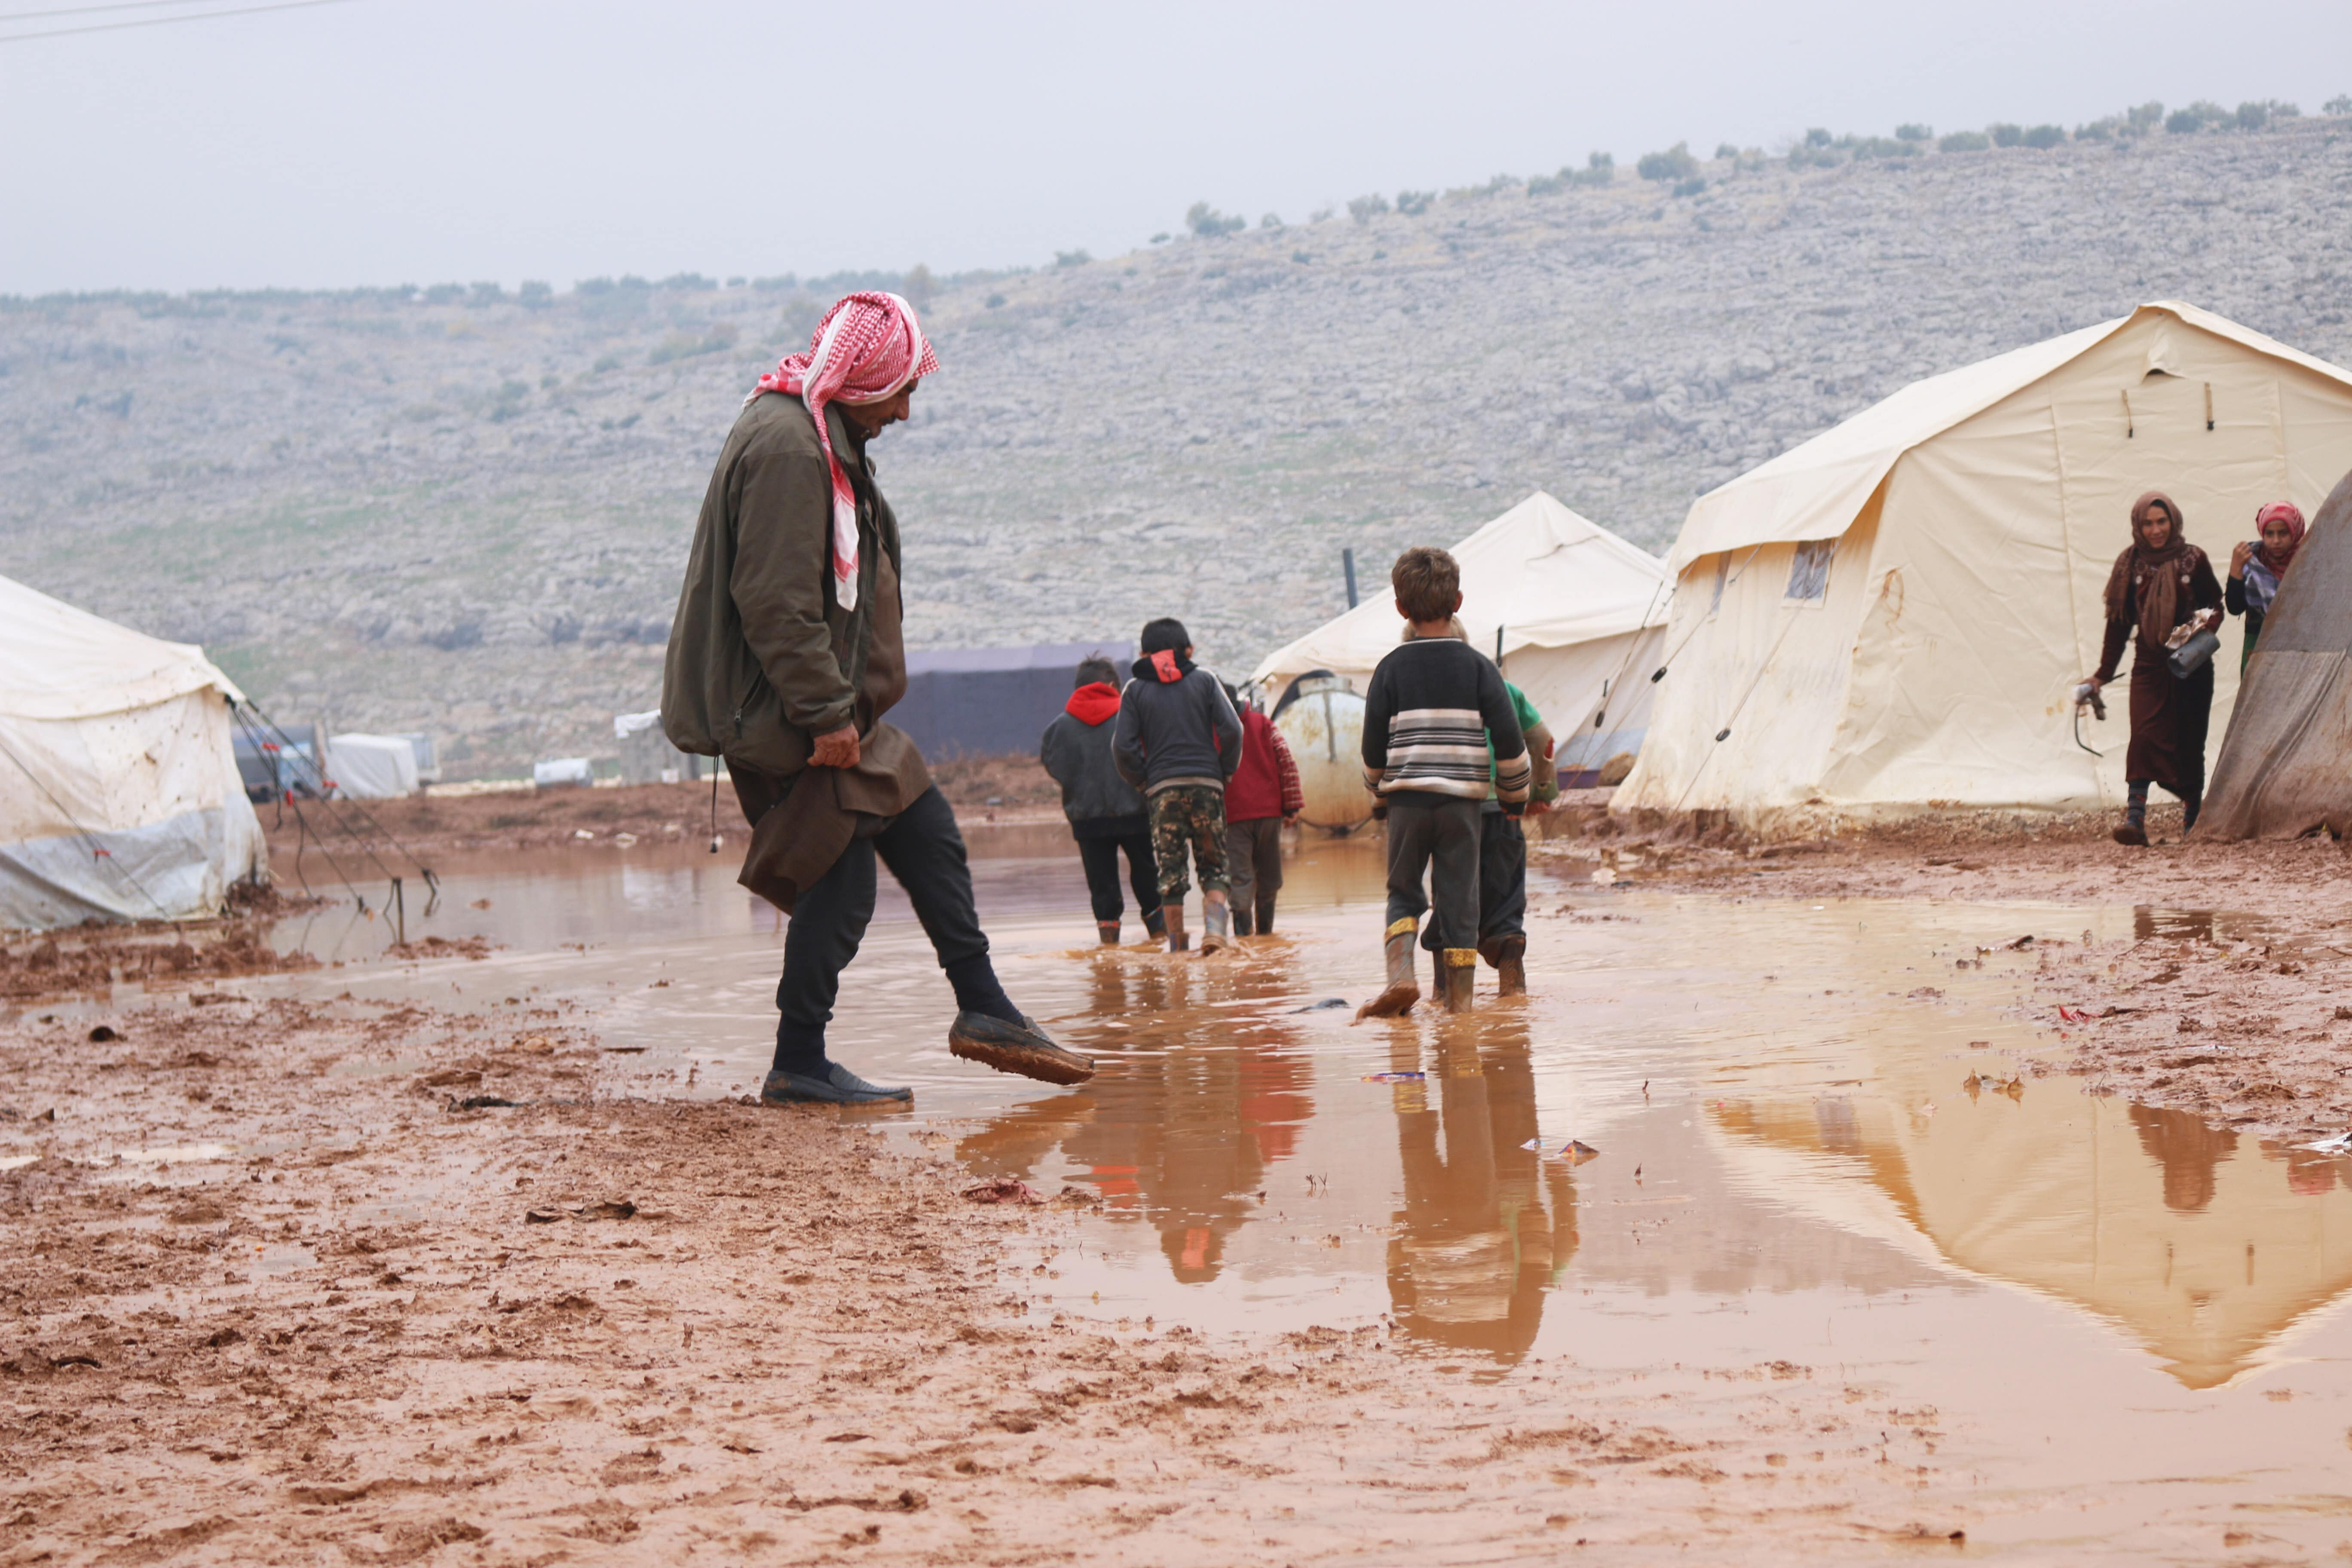 Residents say the situation in the camps has become disastrous since the rains